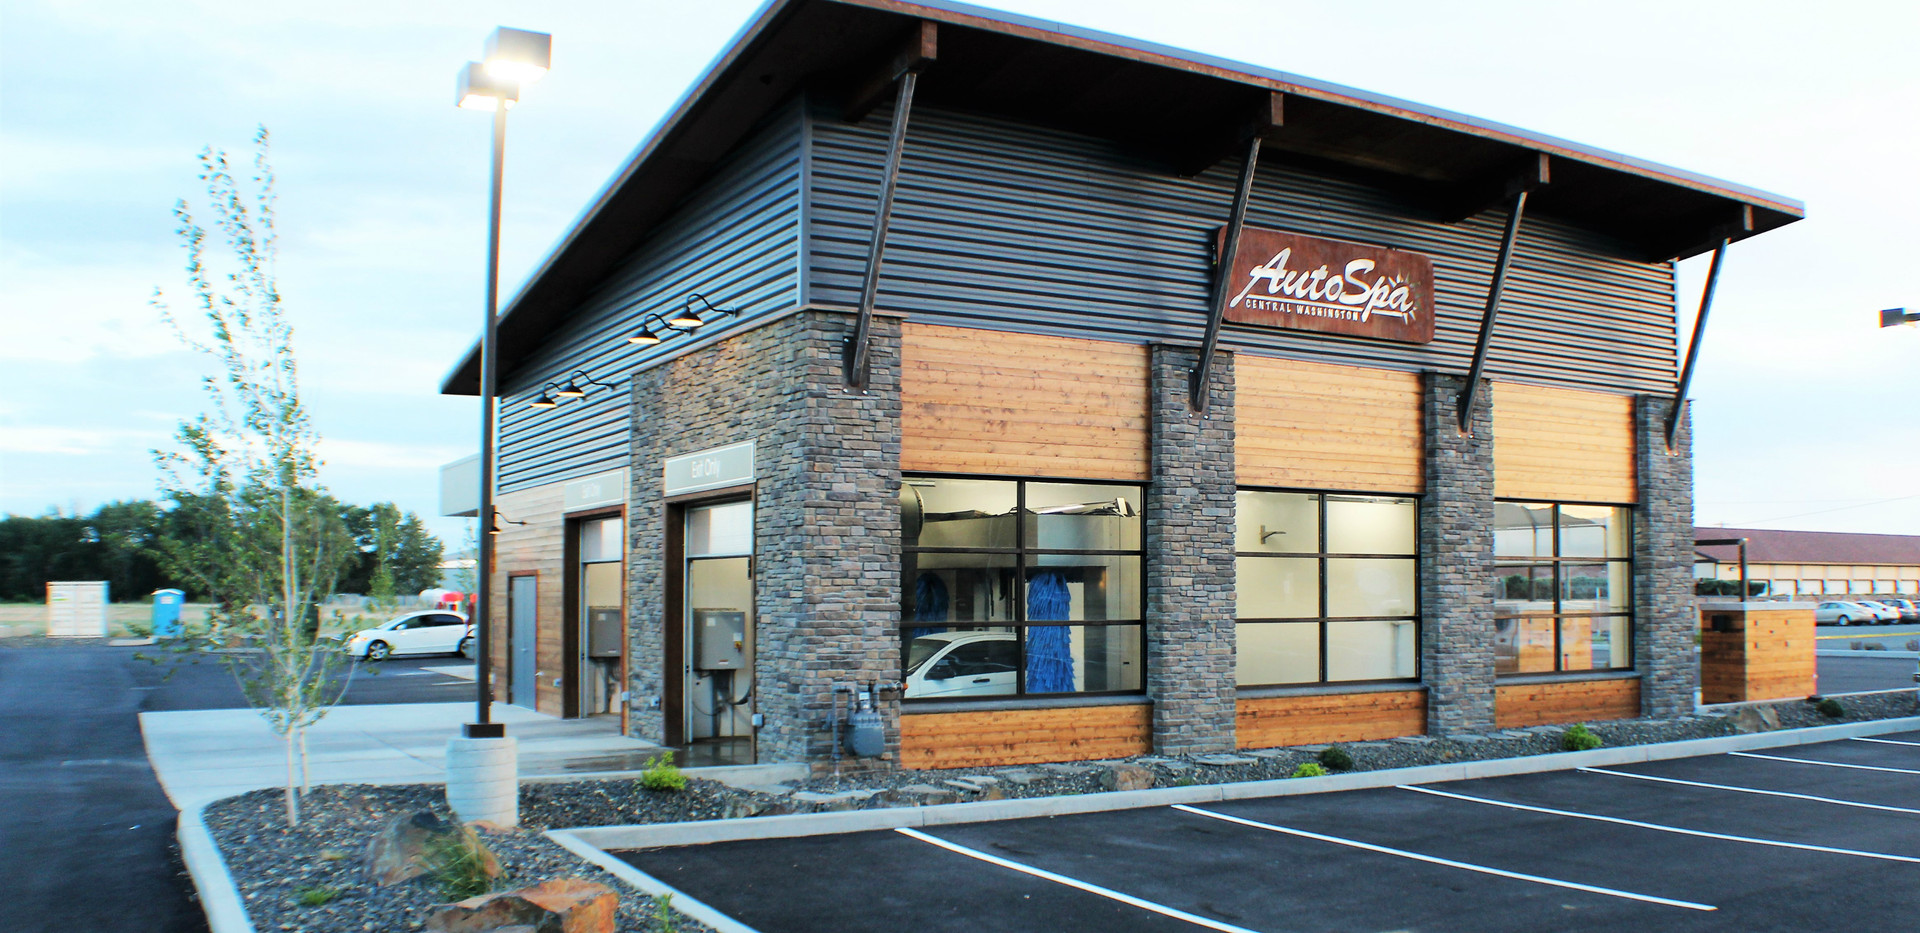 Auto Spa Terrace Heights